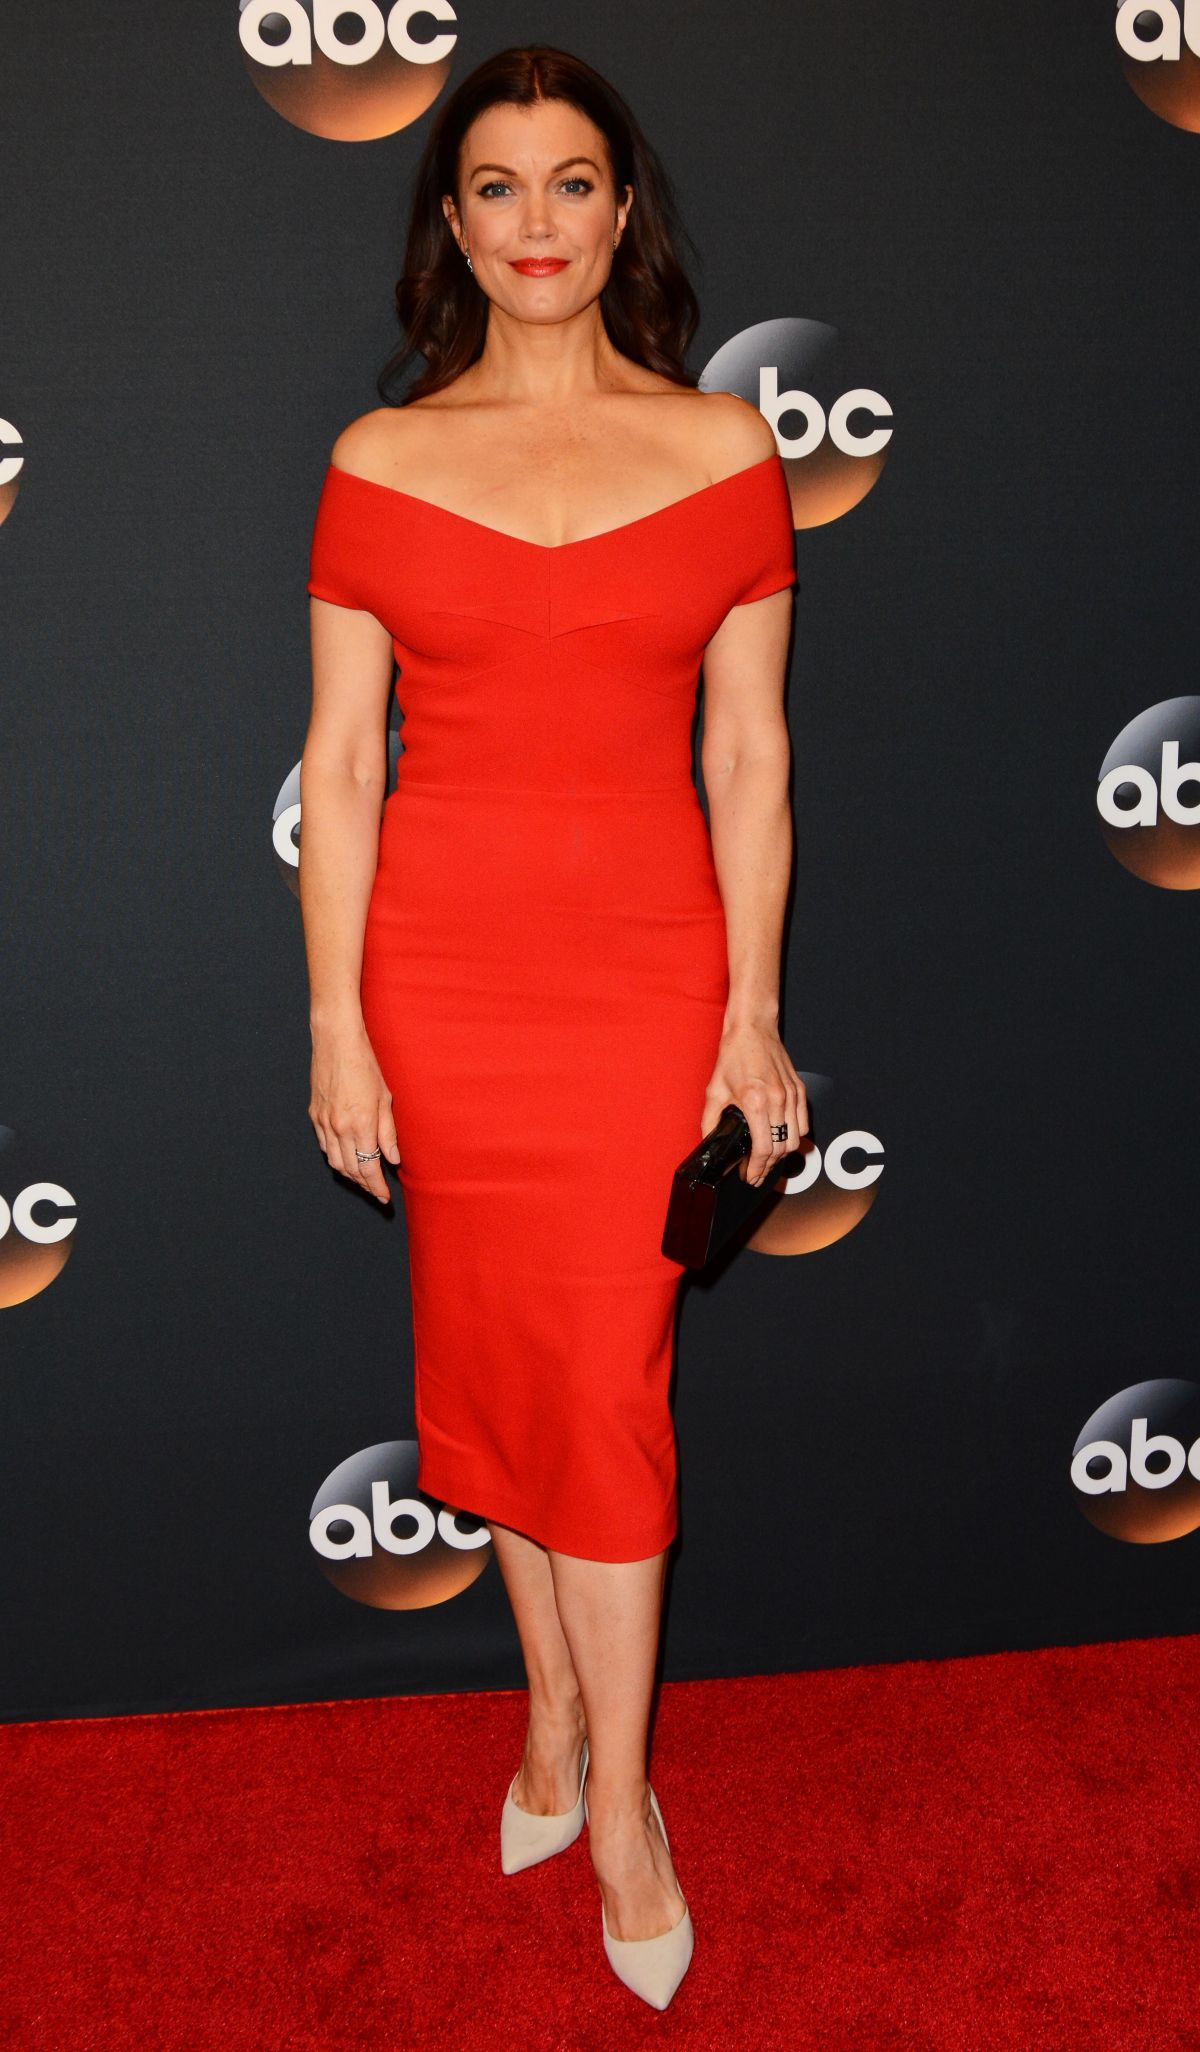 bellamy young at 2017 abc upfronts presentation in new